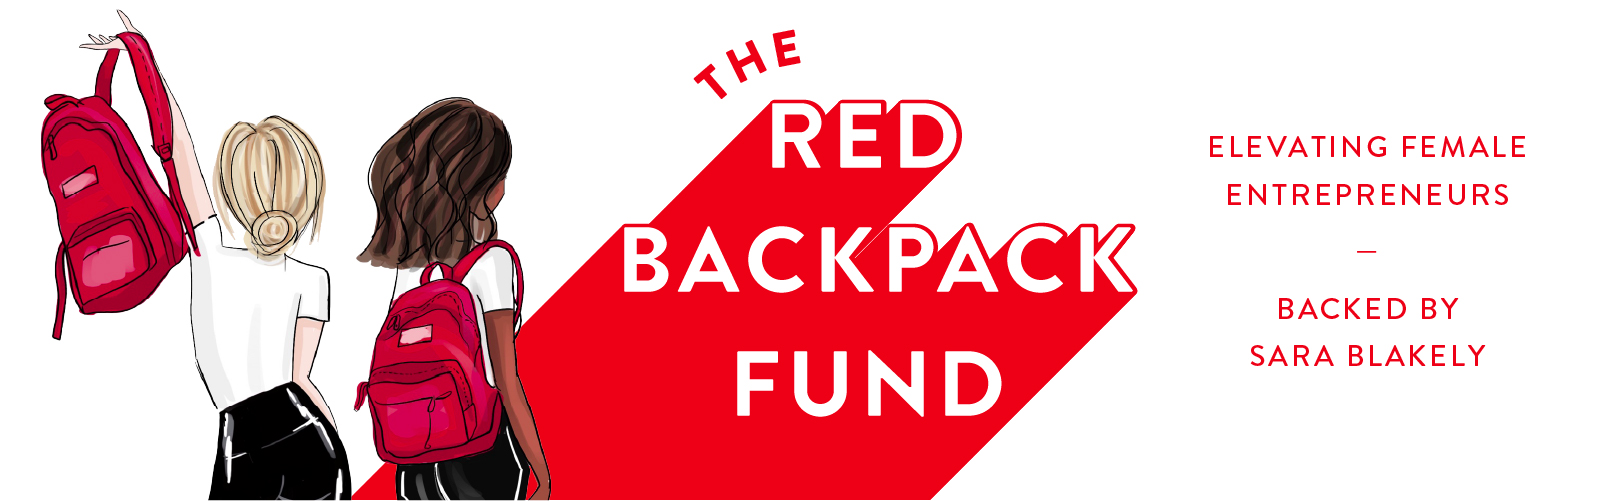 GRANT OPPORTUNITY | THE RED BACKPACK FUND